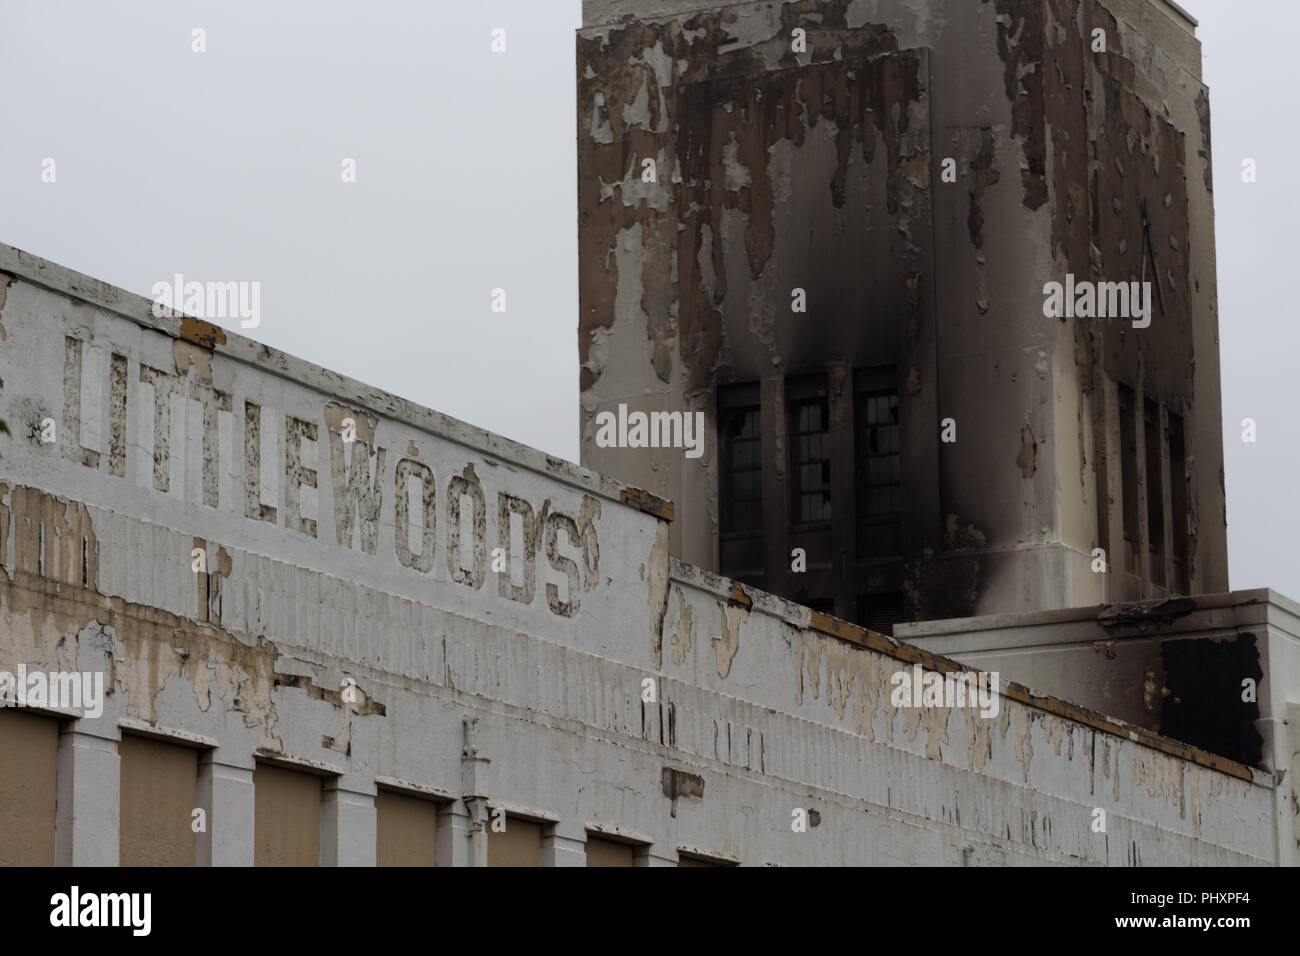 Liverpool UK. 3rd September, 2018. Firefighters continue to damp down the historic Littlewoods building on Edge Lane Liverpool after it was badly damaged by fire on Sunday evening. Credit: Ken Biggs/Alamy Live News. - Stock Image